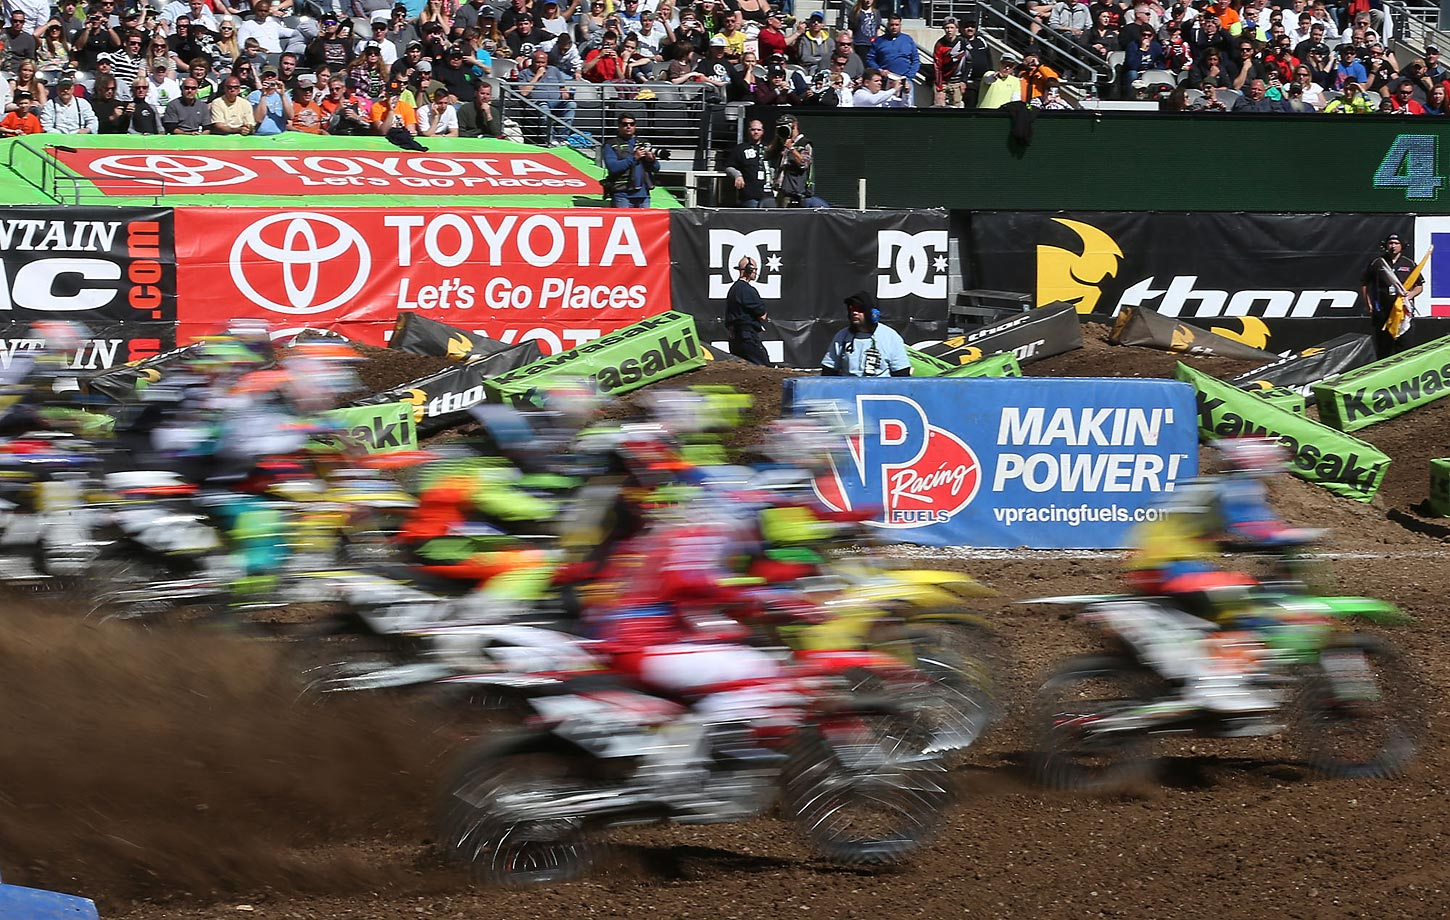 Motorcycles roar out of the gates in front of thousands of fans at Metlife Stadium.